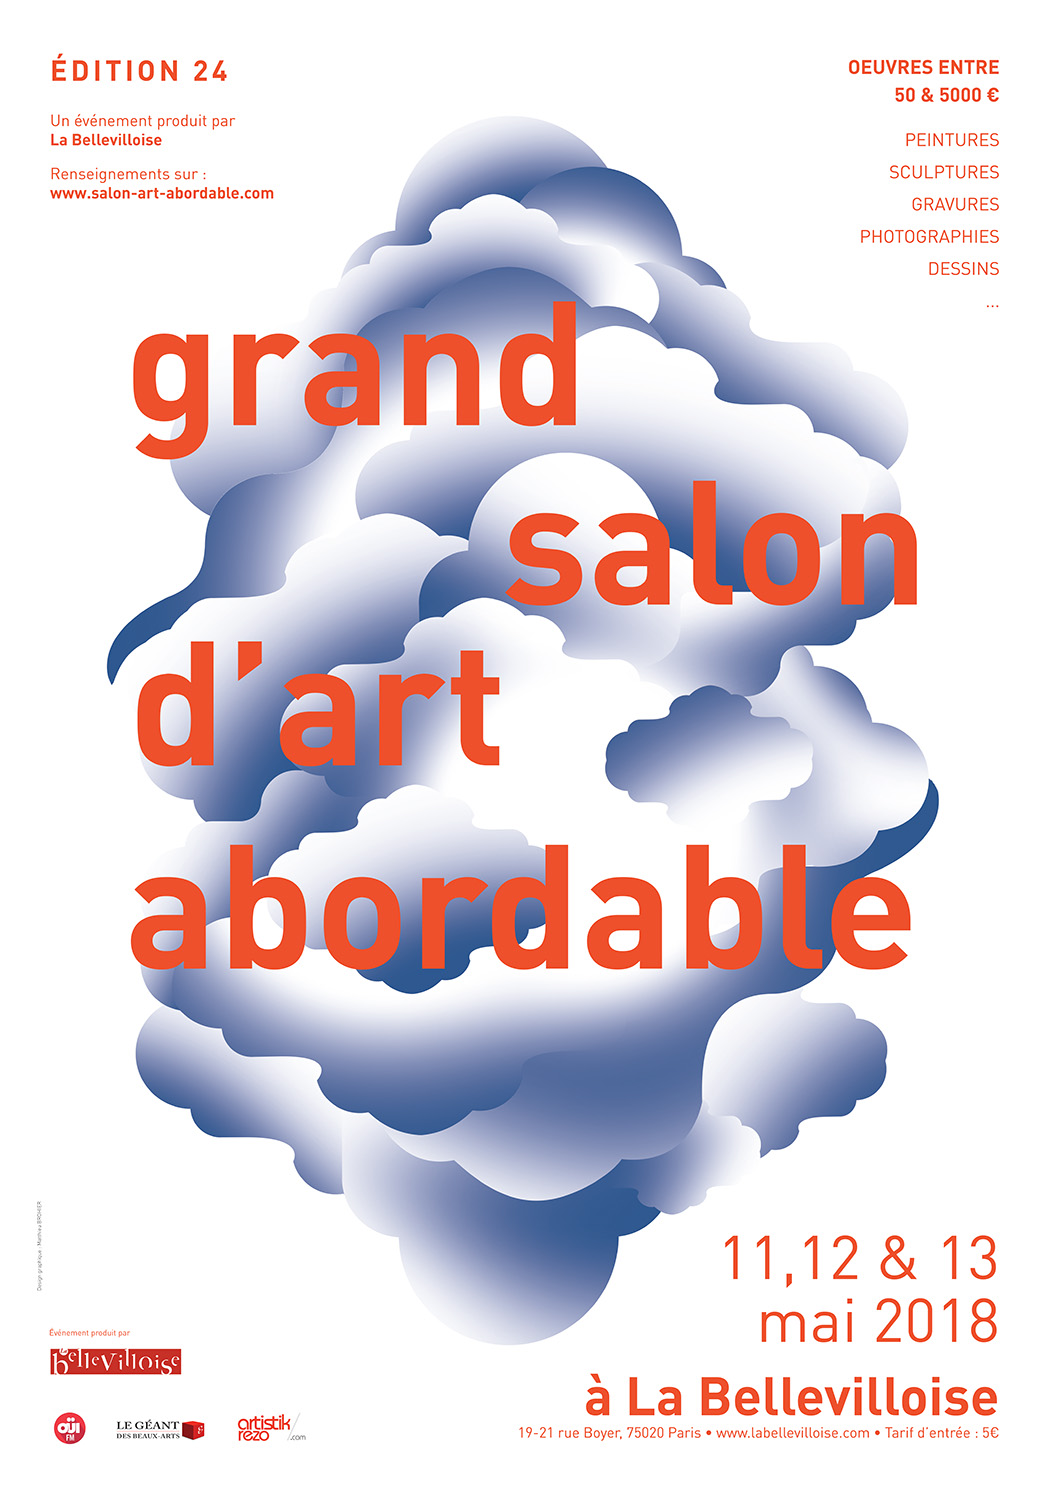 Affiche A1-Edition 24.indd